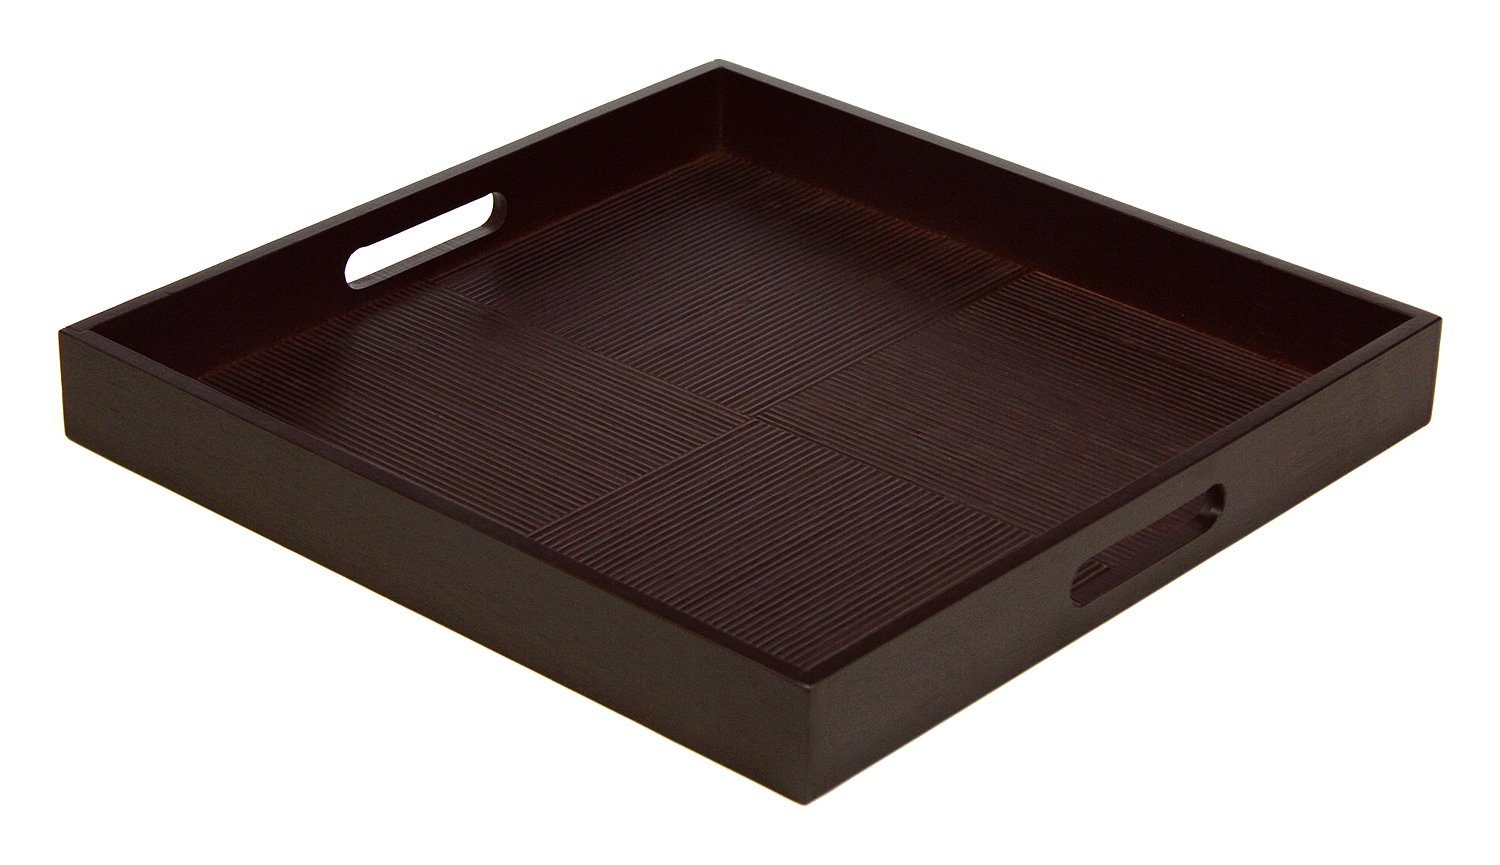 Simply Bamboo BDTS16 Espresso Brown Bamboo Wood Square Serving Tray, L x 16'' W, 16 x 16 x 2 by Simply Bamboo